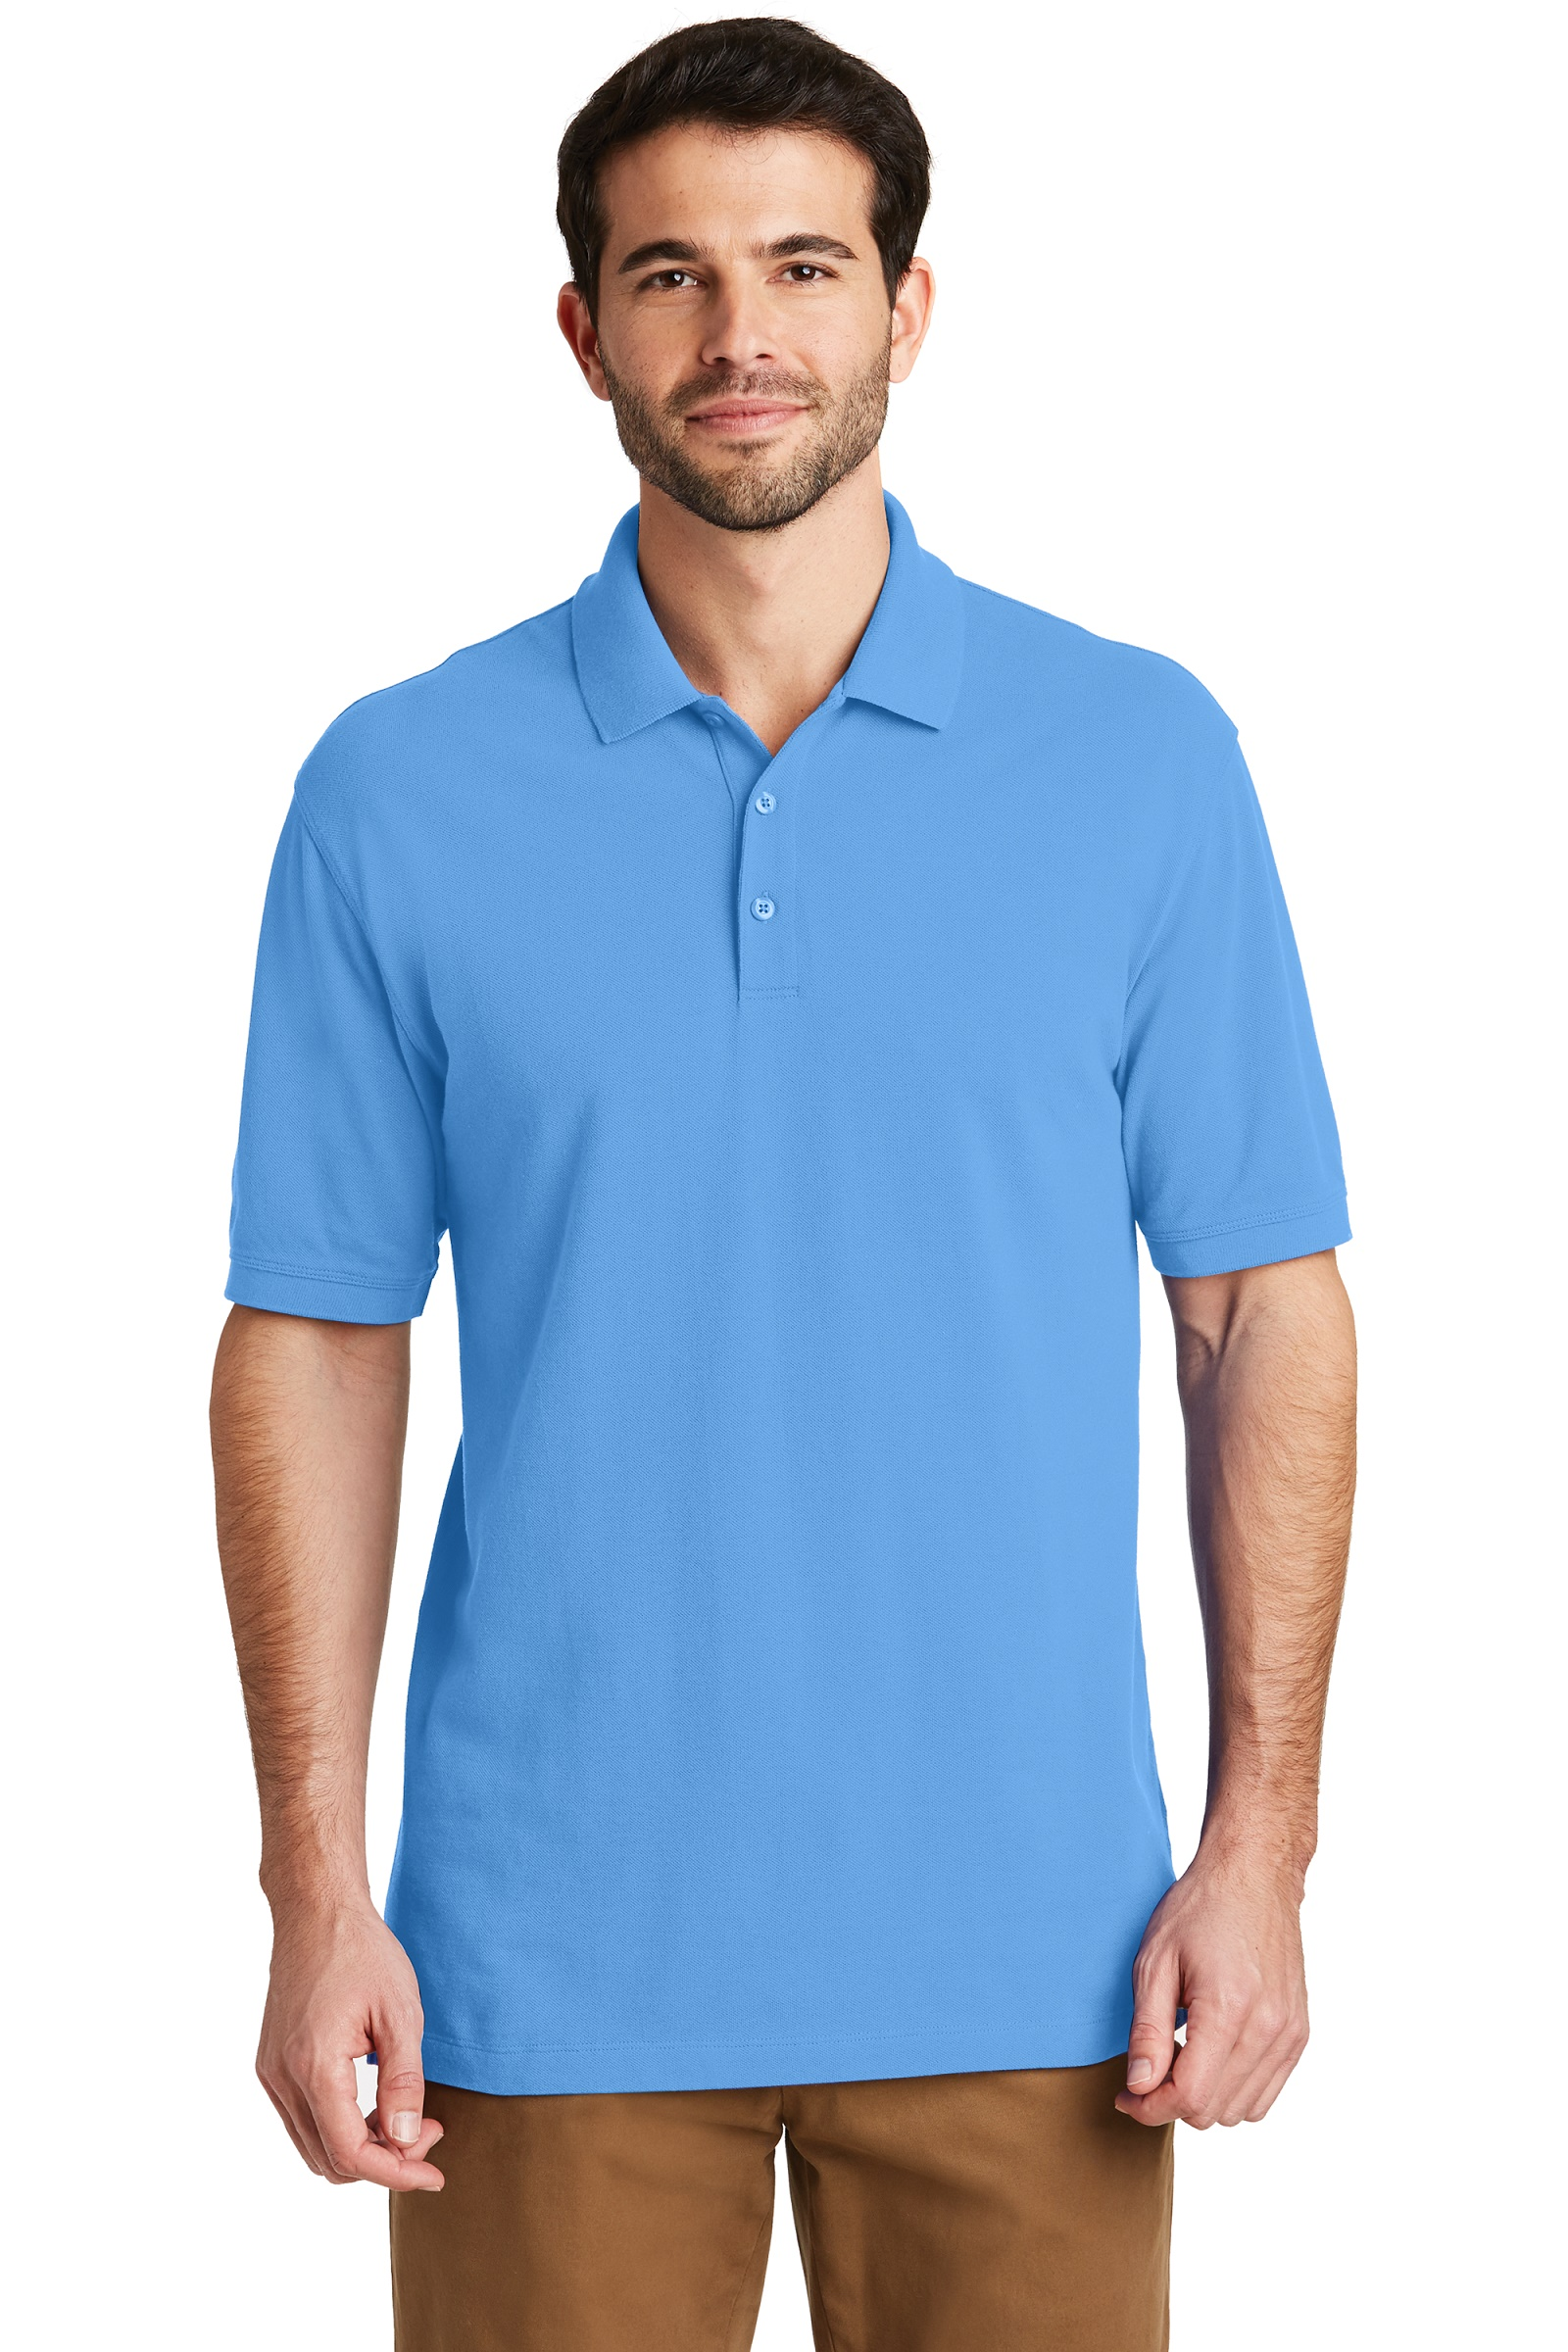 Port Authority Embroidered Men's EZCotton Pique Polo